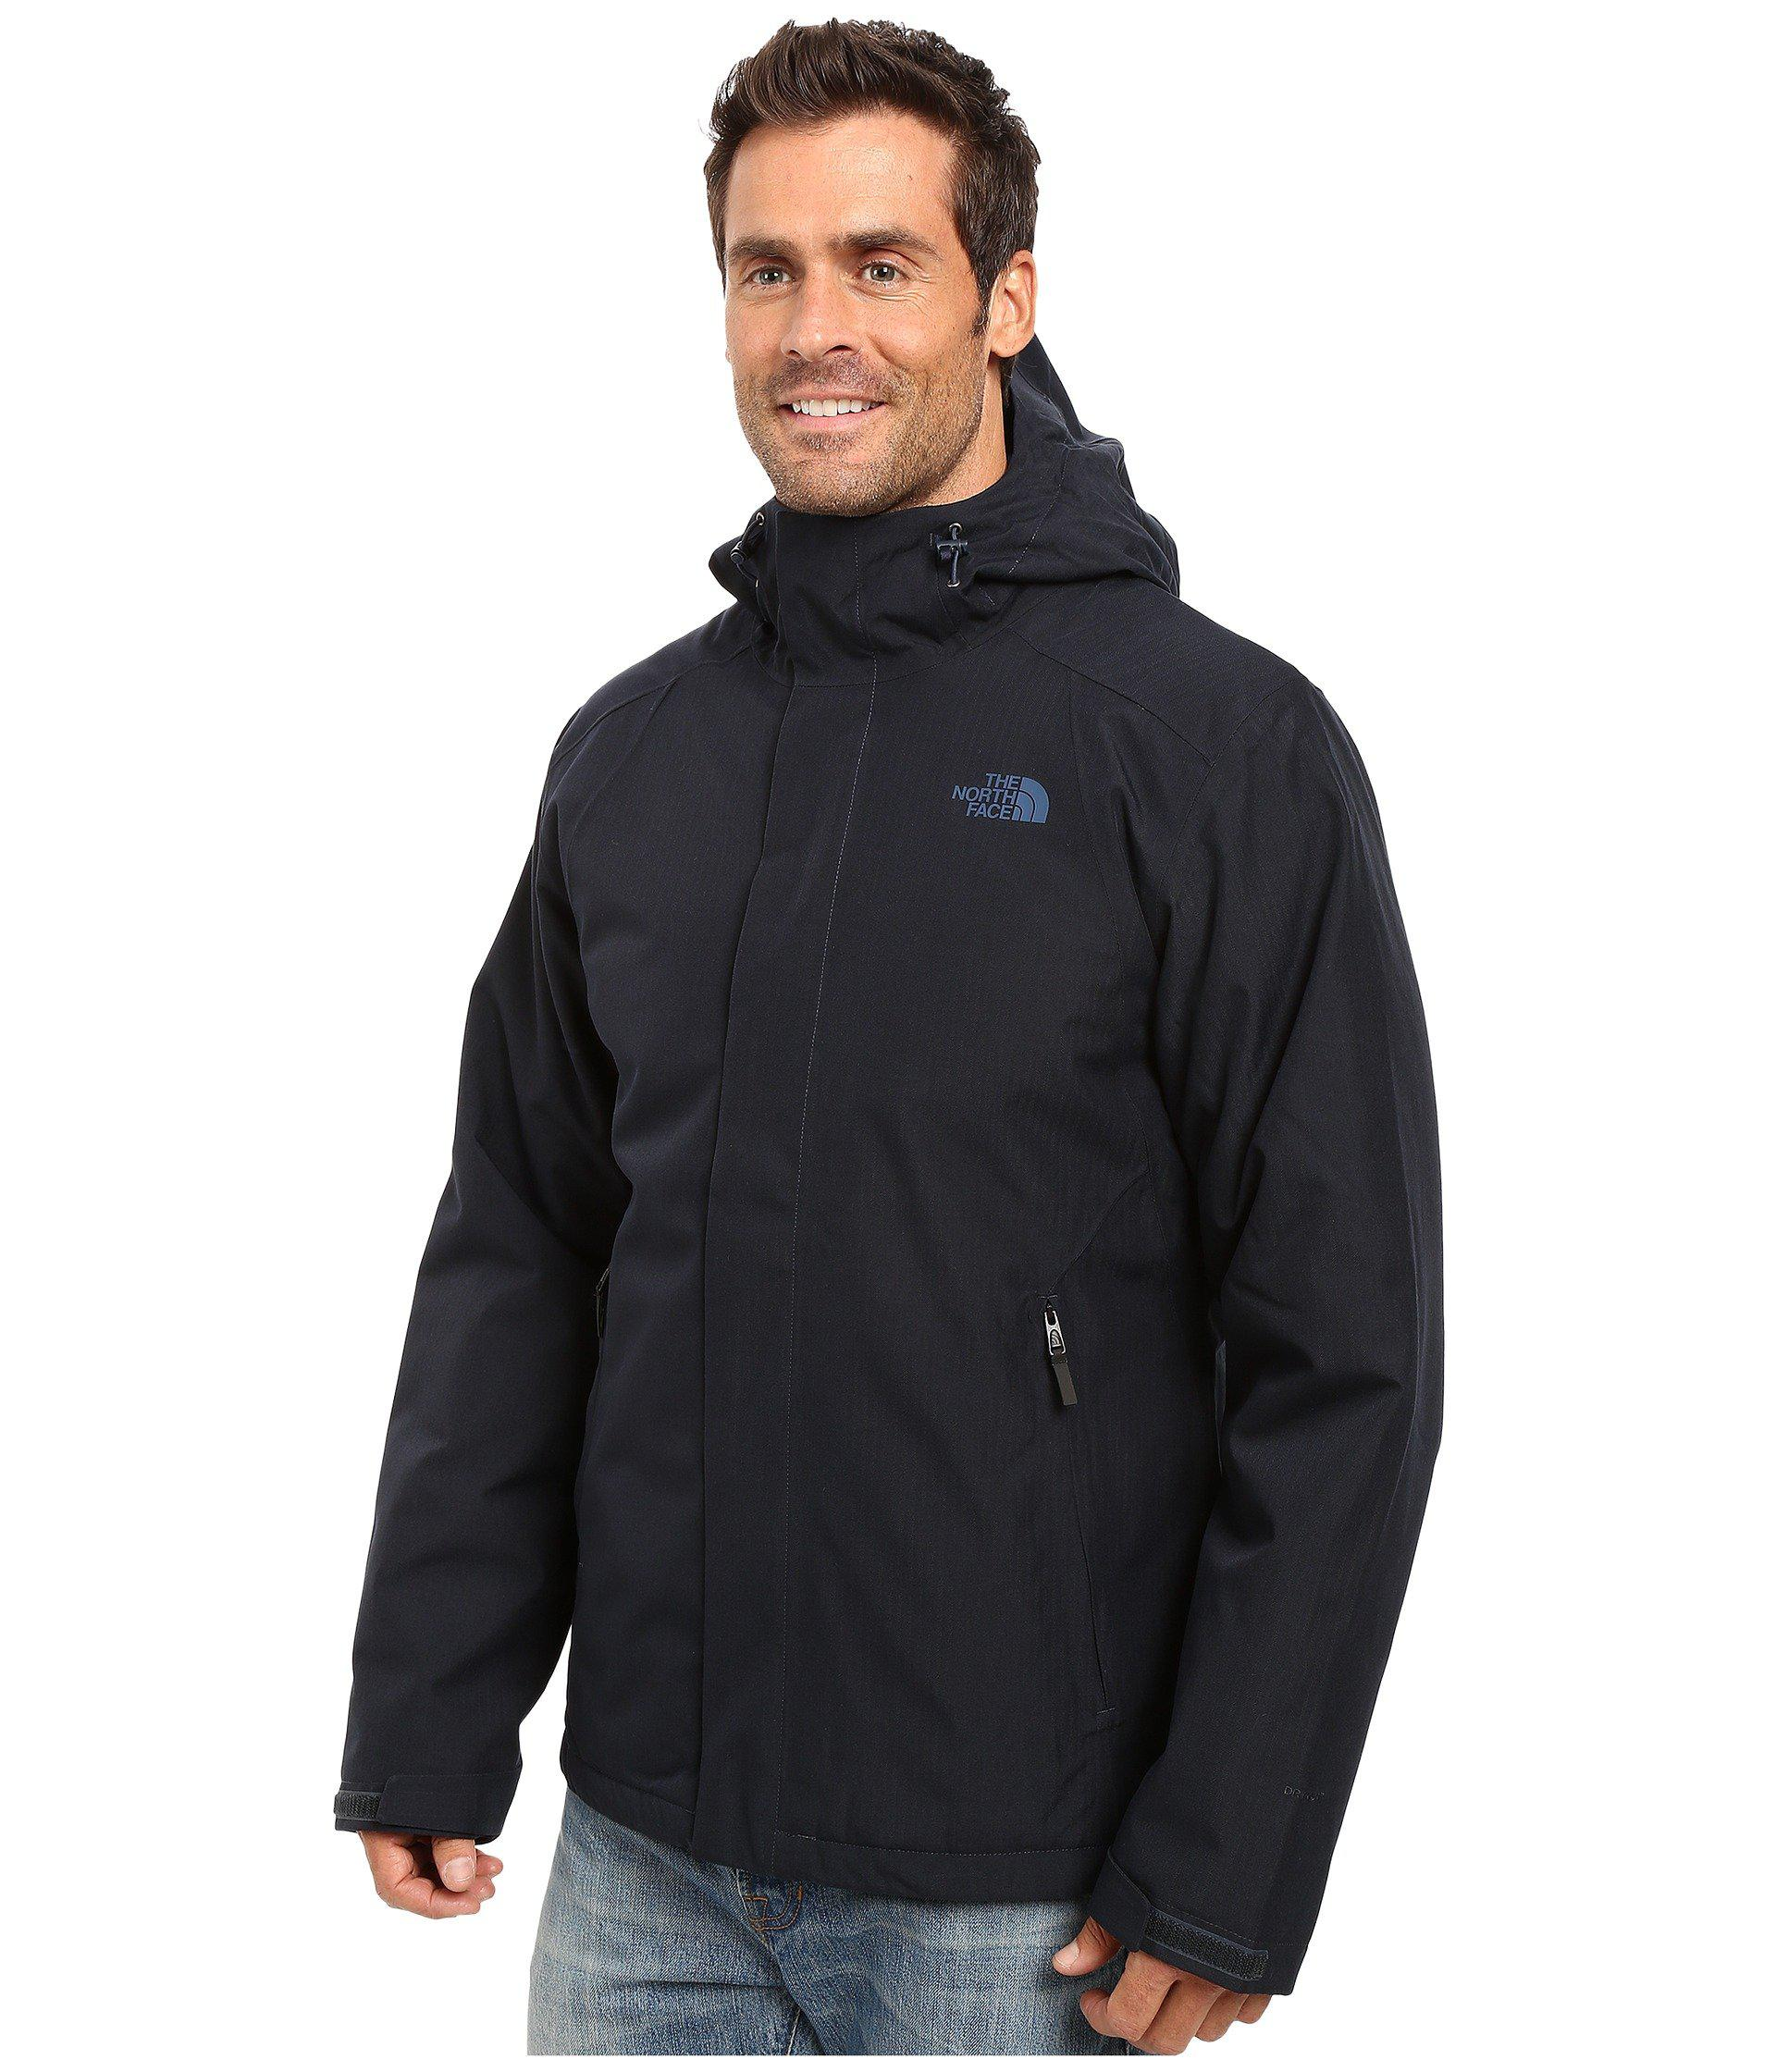 f3815e763 discount code for the north face mens inlux insulated hooded jacket ...